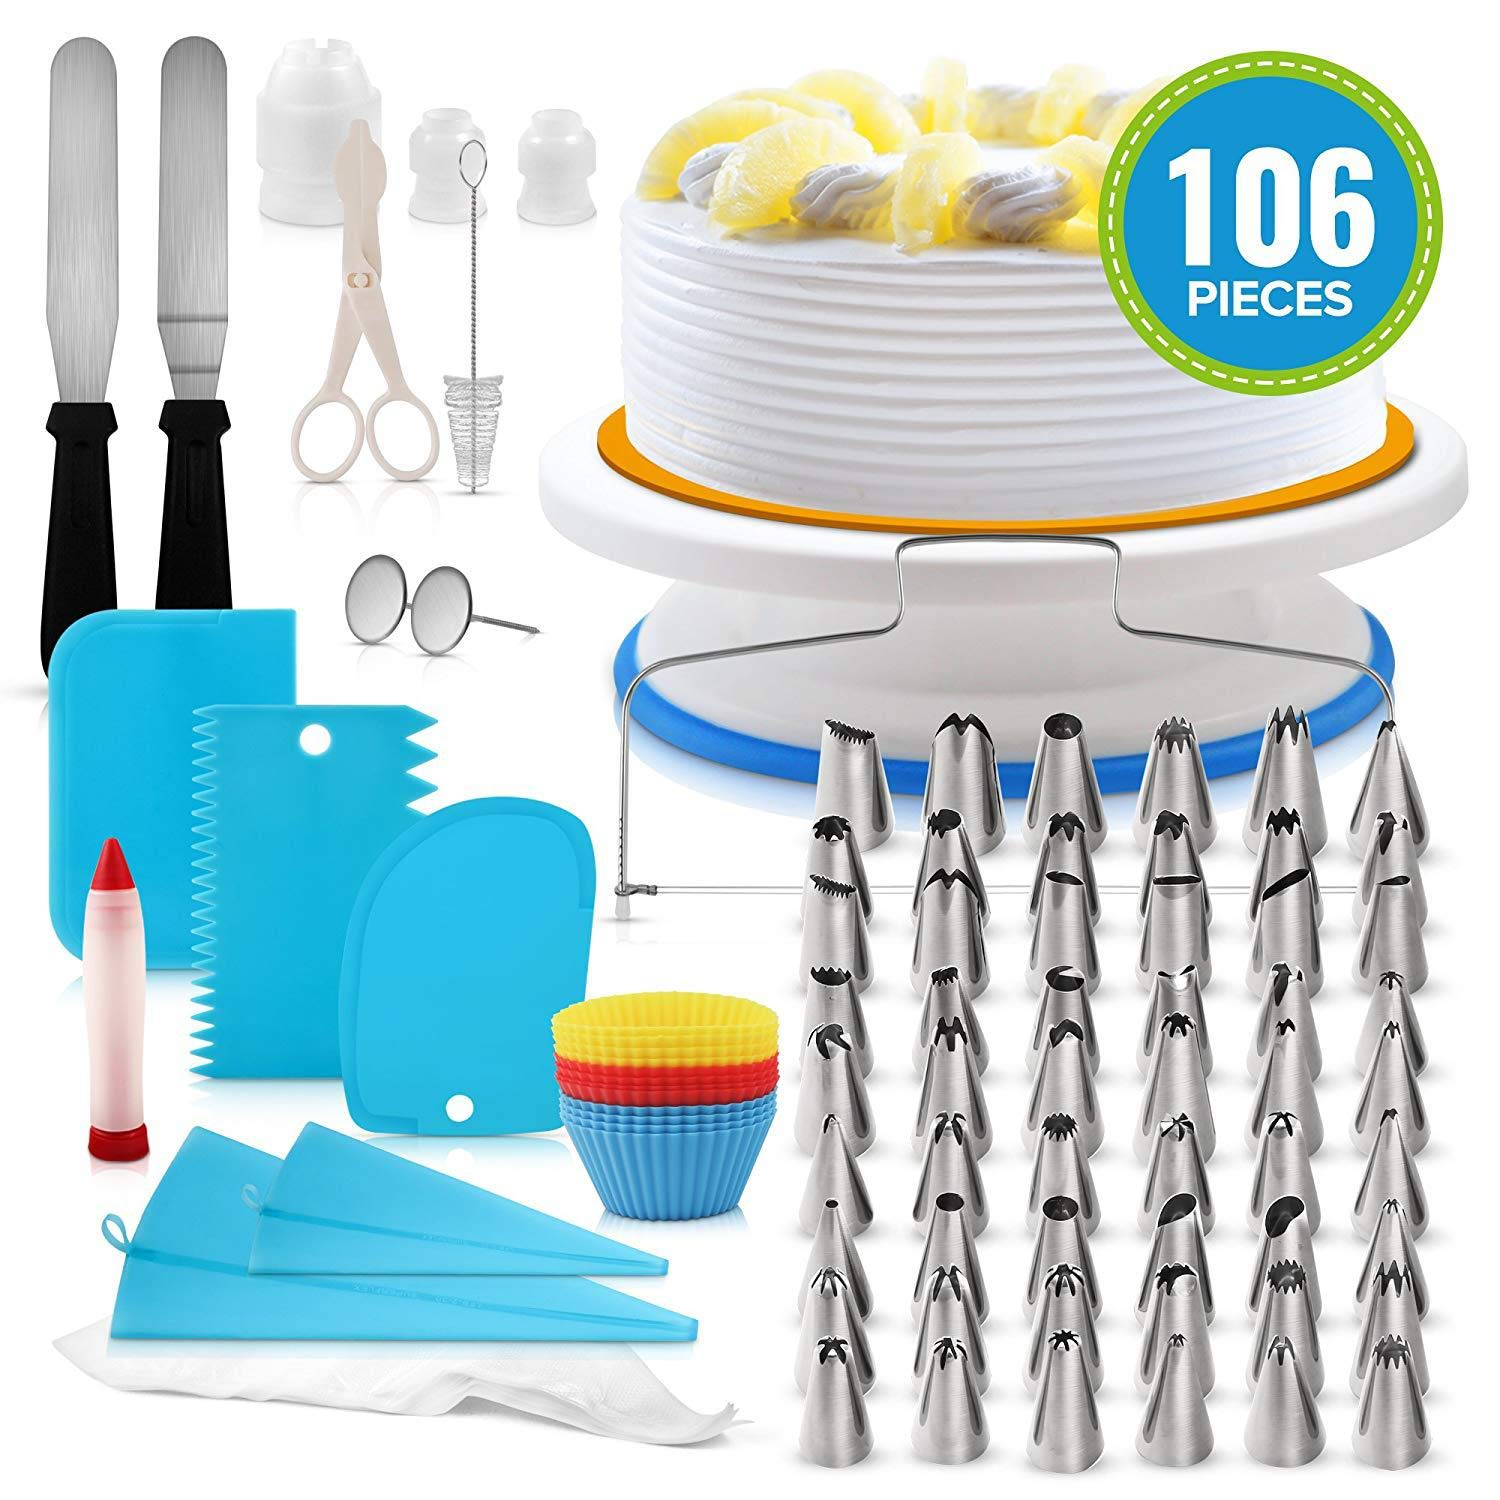 JHKJ Cake Decorating Supplies 106-in-1 Baking Accessories with Cake Turntable Stands, Cake Tips etc Frosting Tools Set,Blue